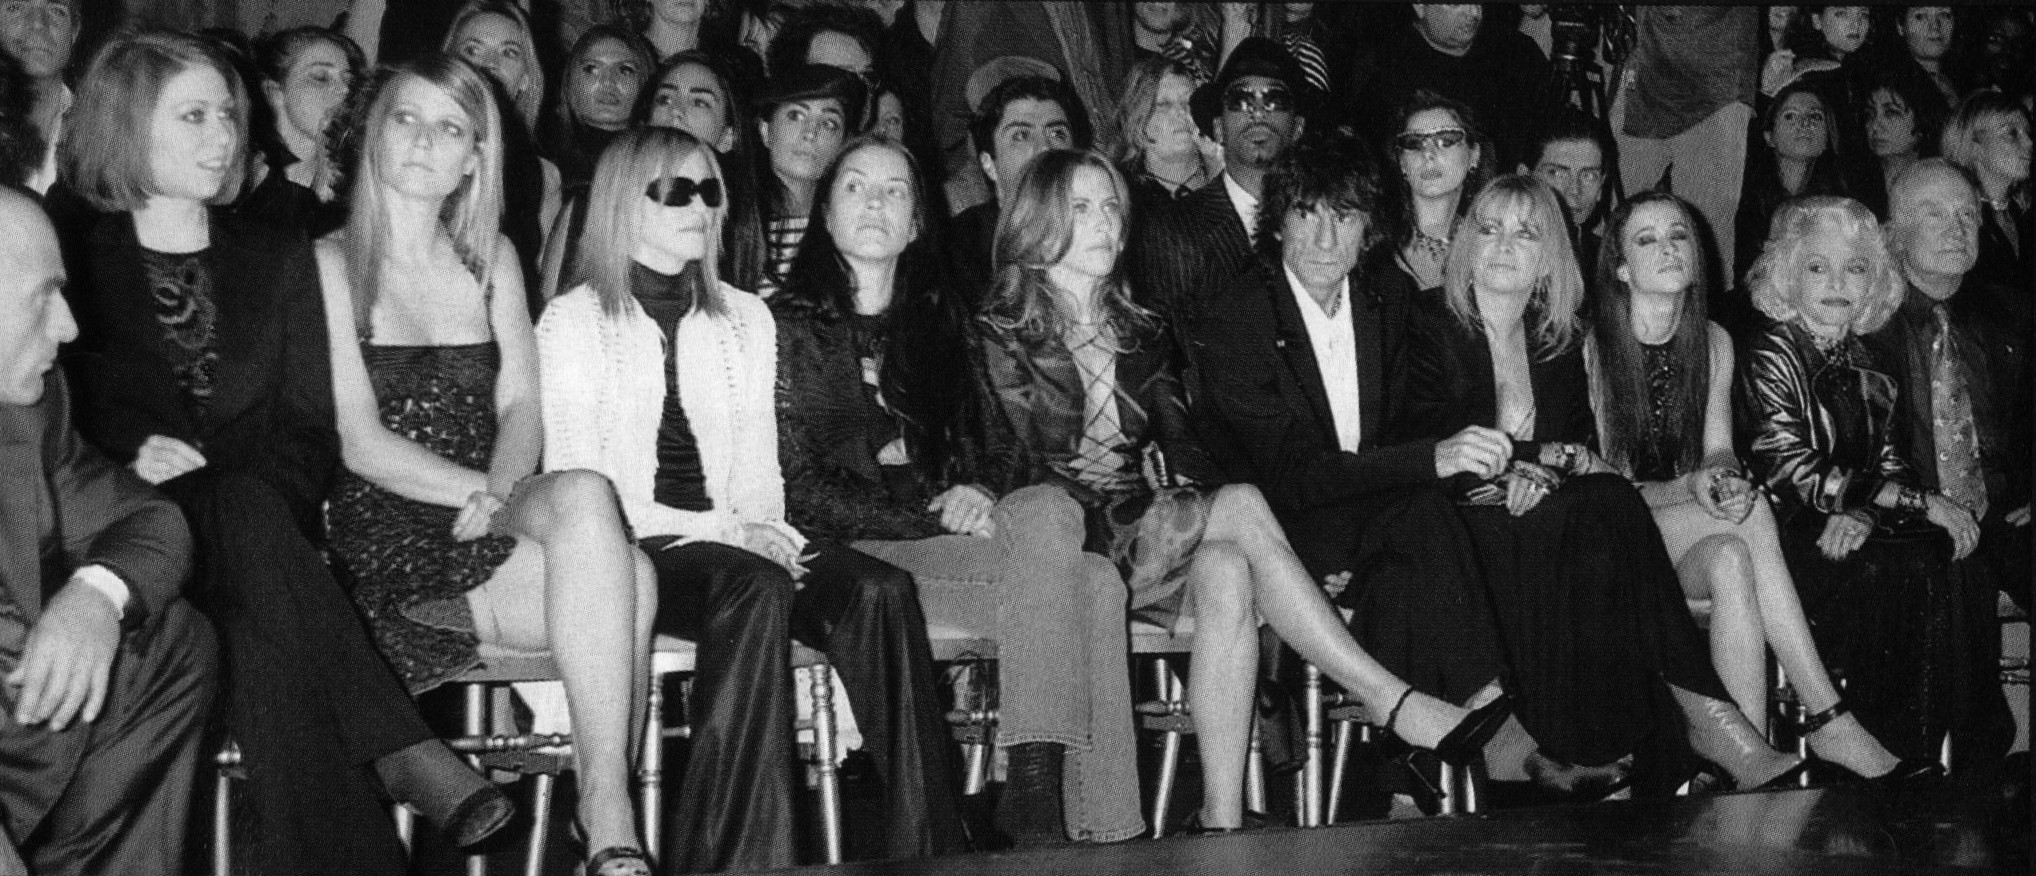 versace fashion show ss 2002 front row photography bertrand rindoff petroff vogue paris mars 2002 1